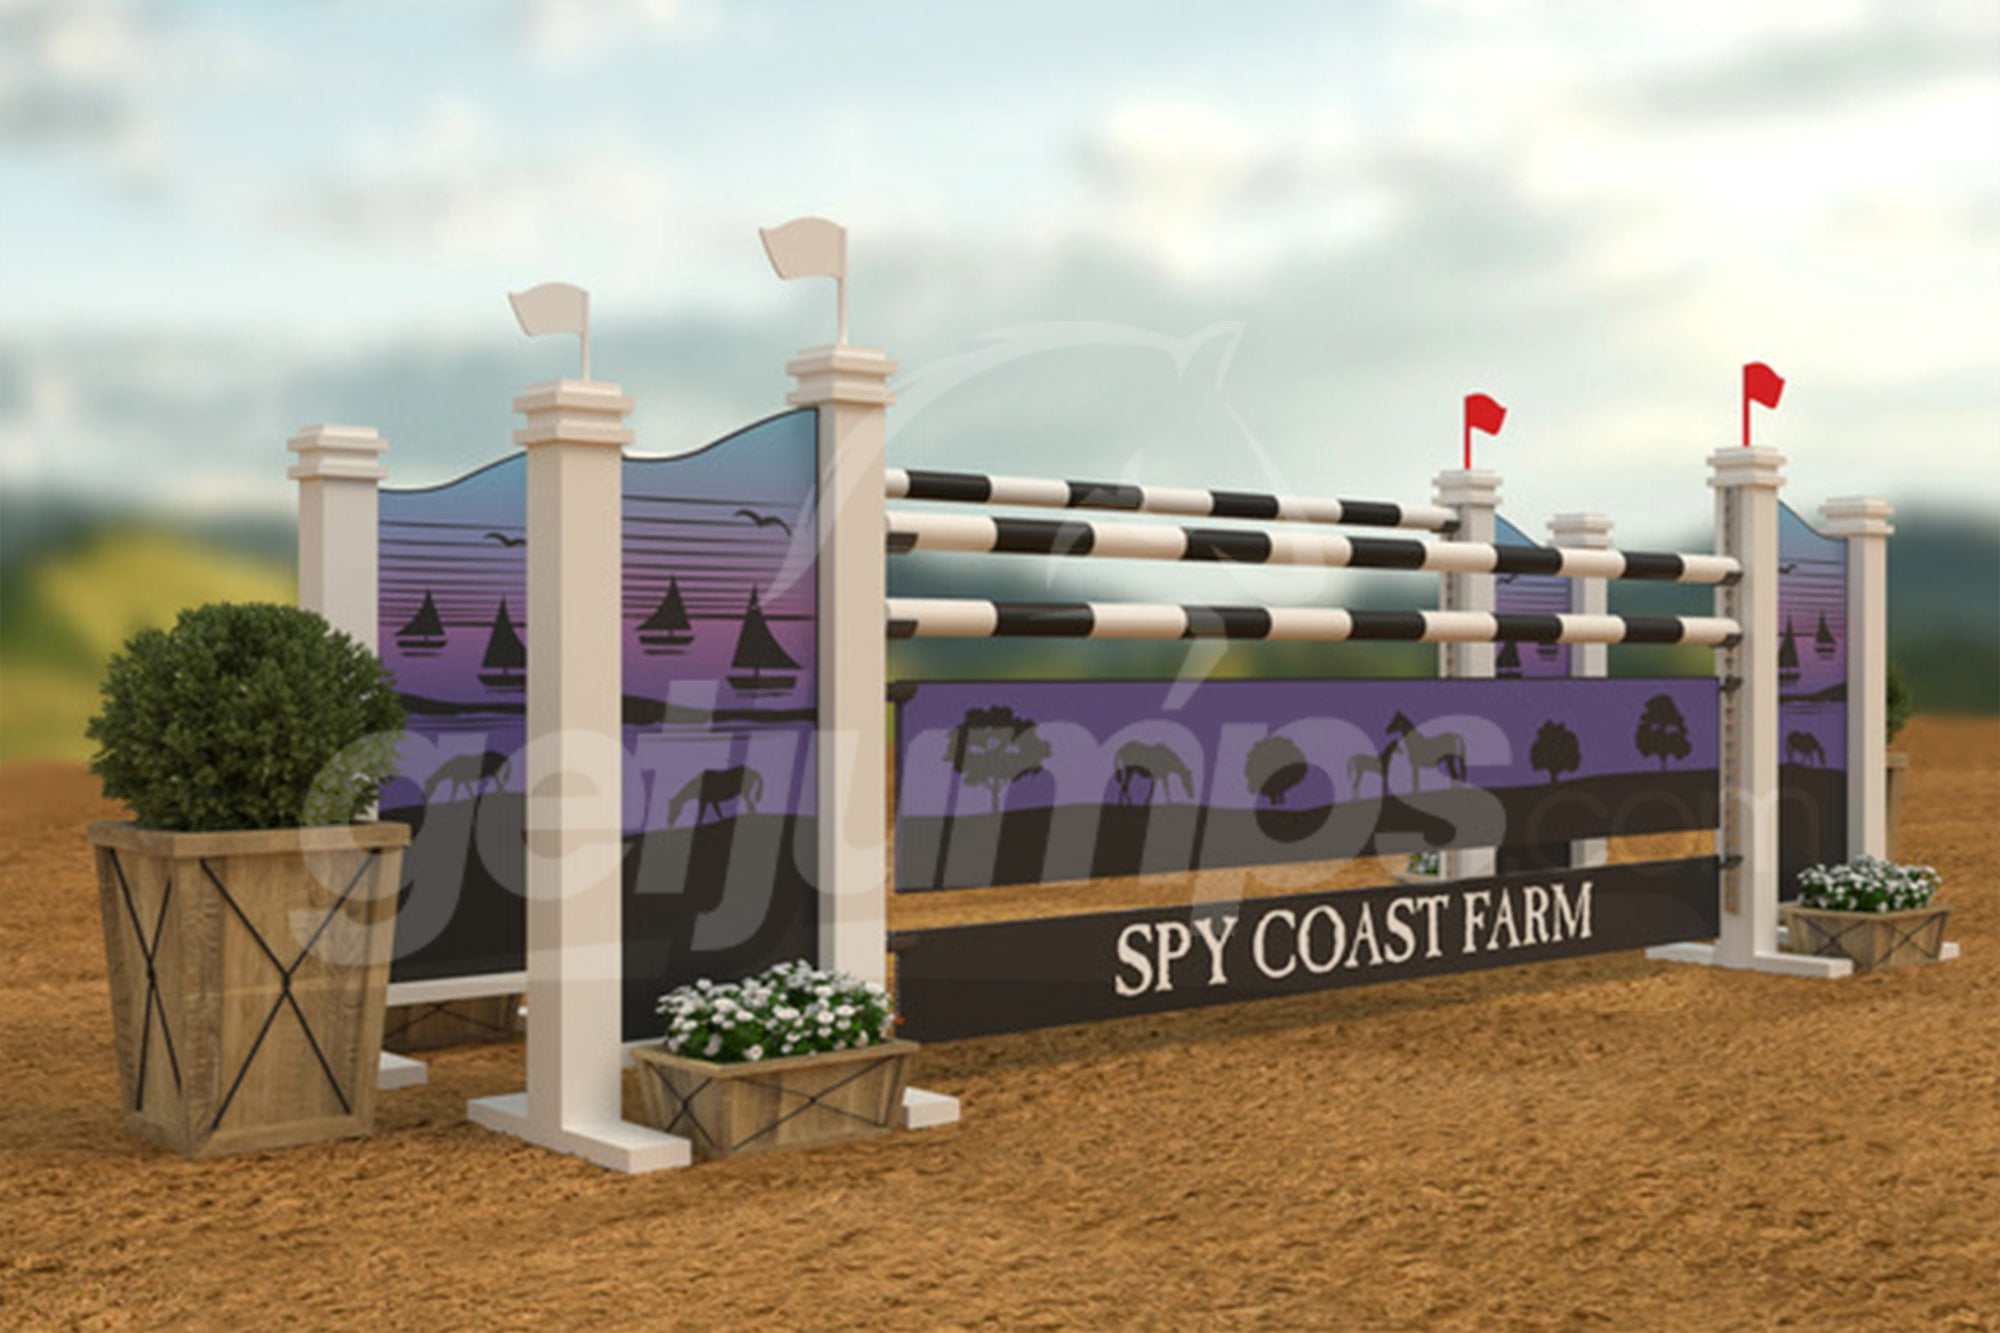 Spy Coast Farm themed horse jump